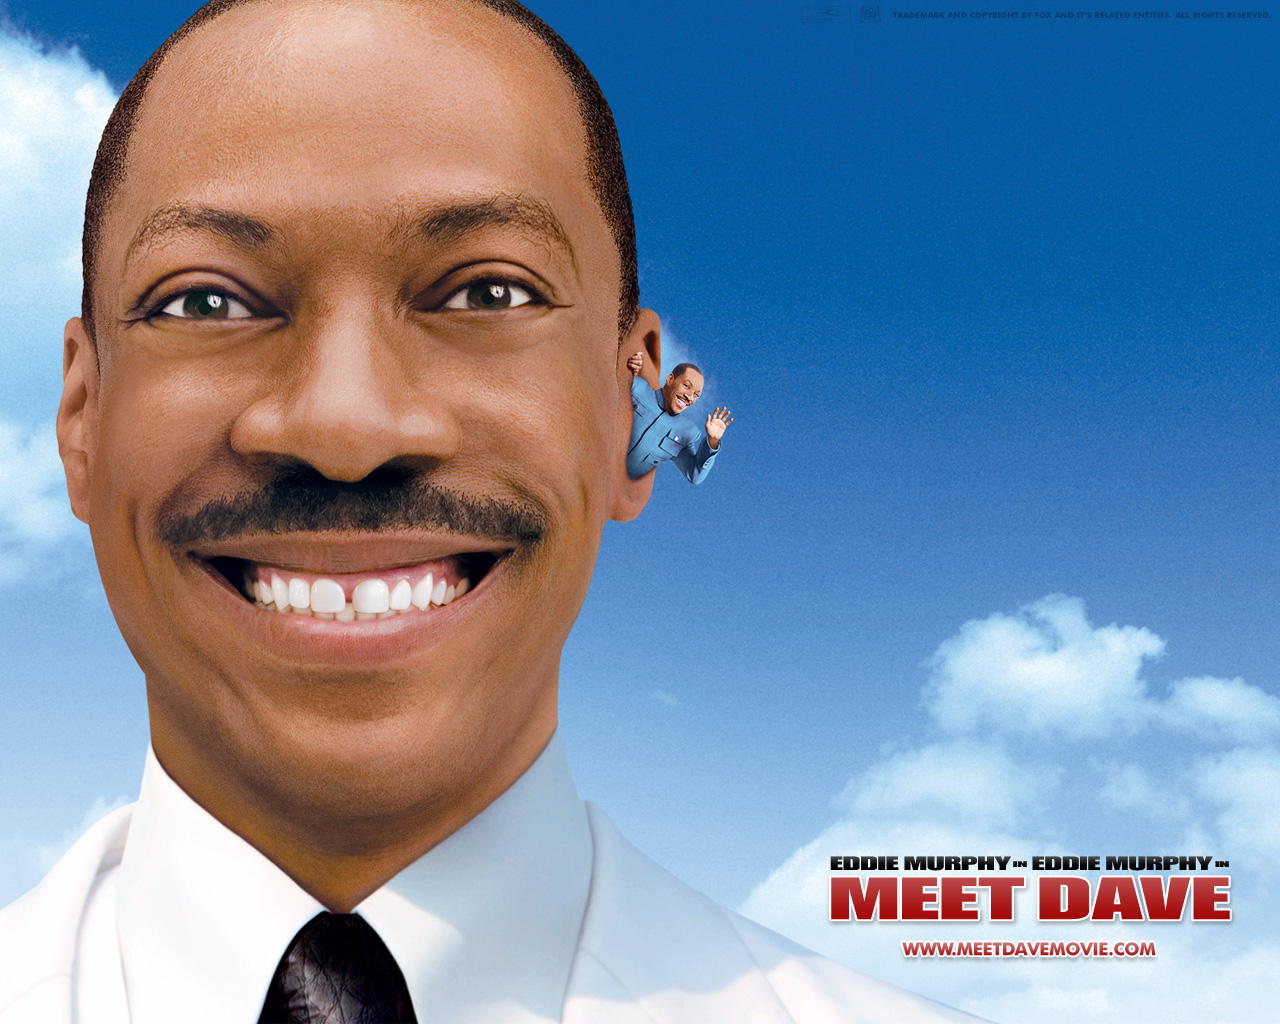 Eddie Murphy in Meet Dave Wallpaper 2